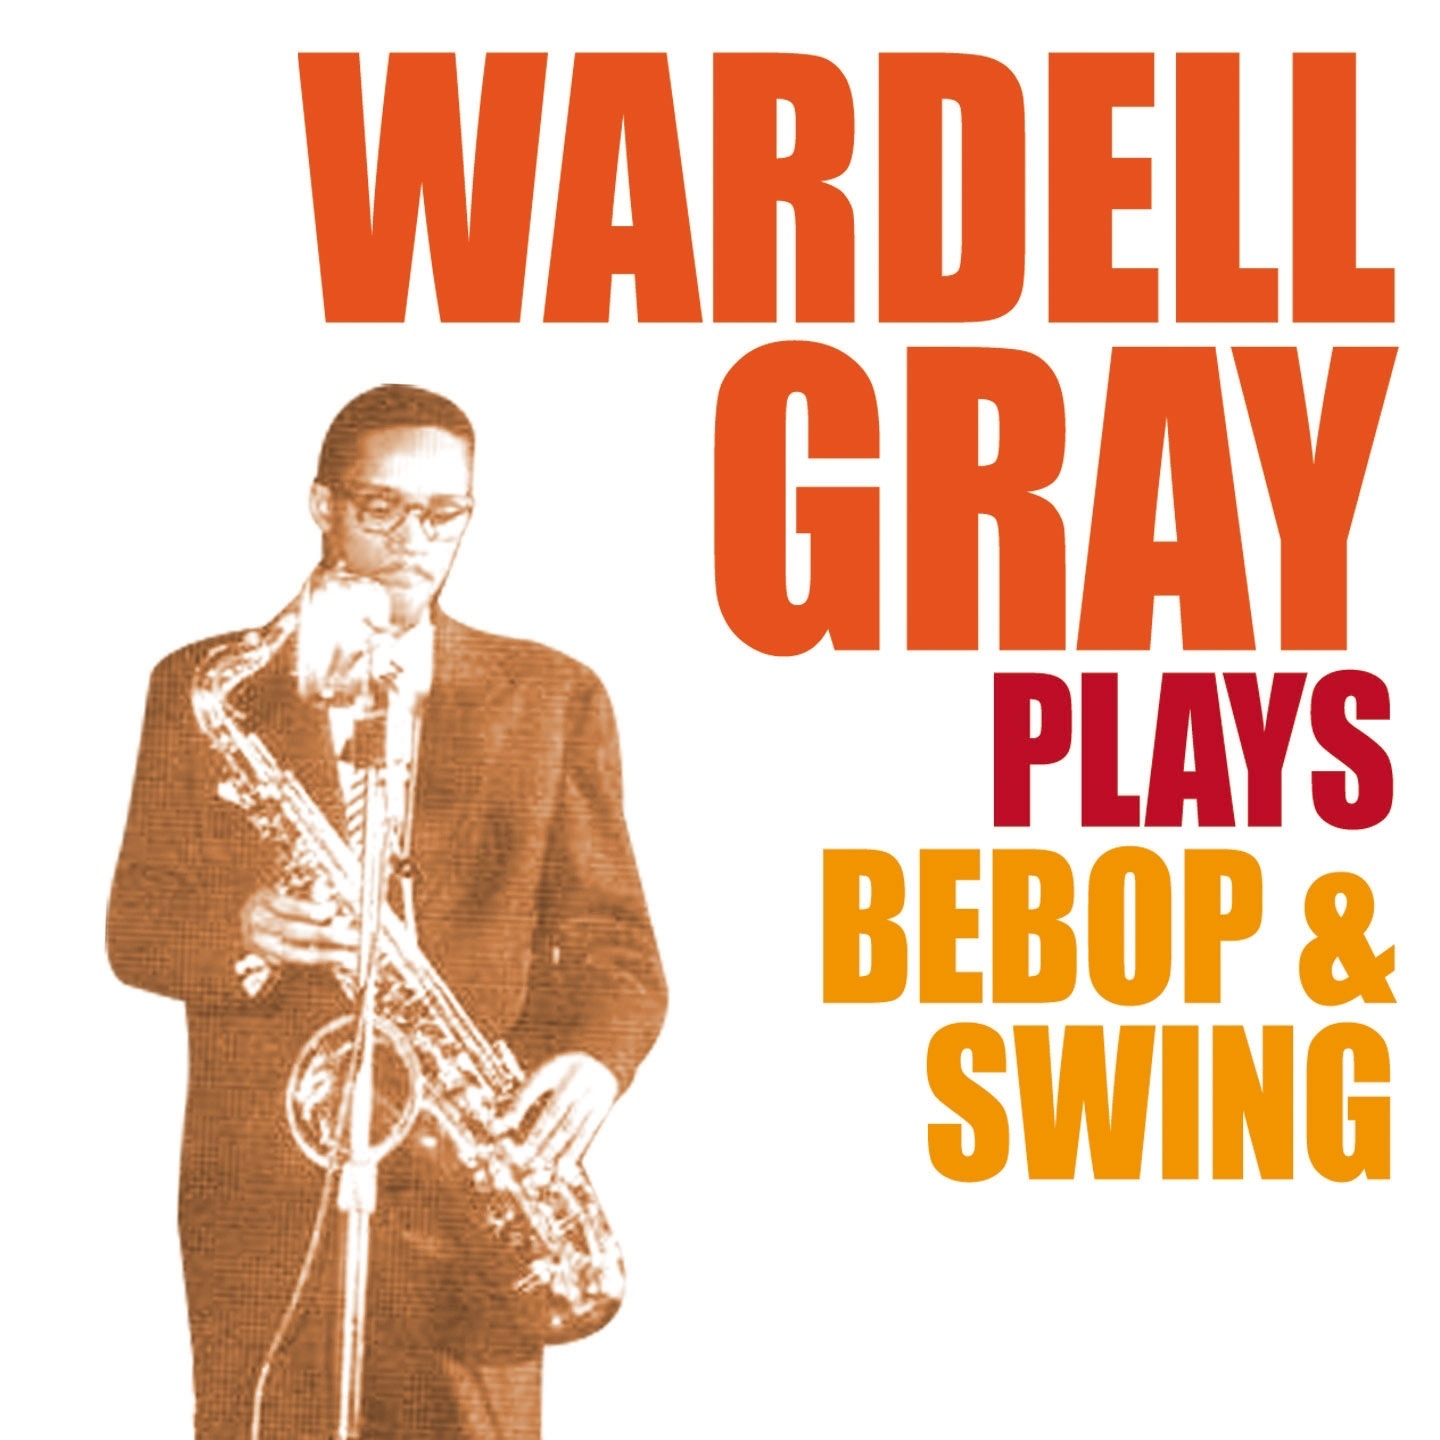 african american contributions to the music world from swing to bebop